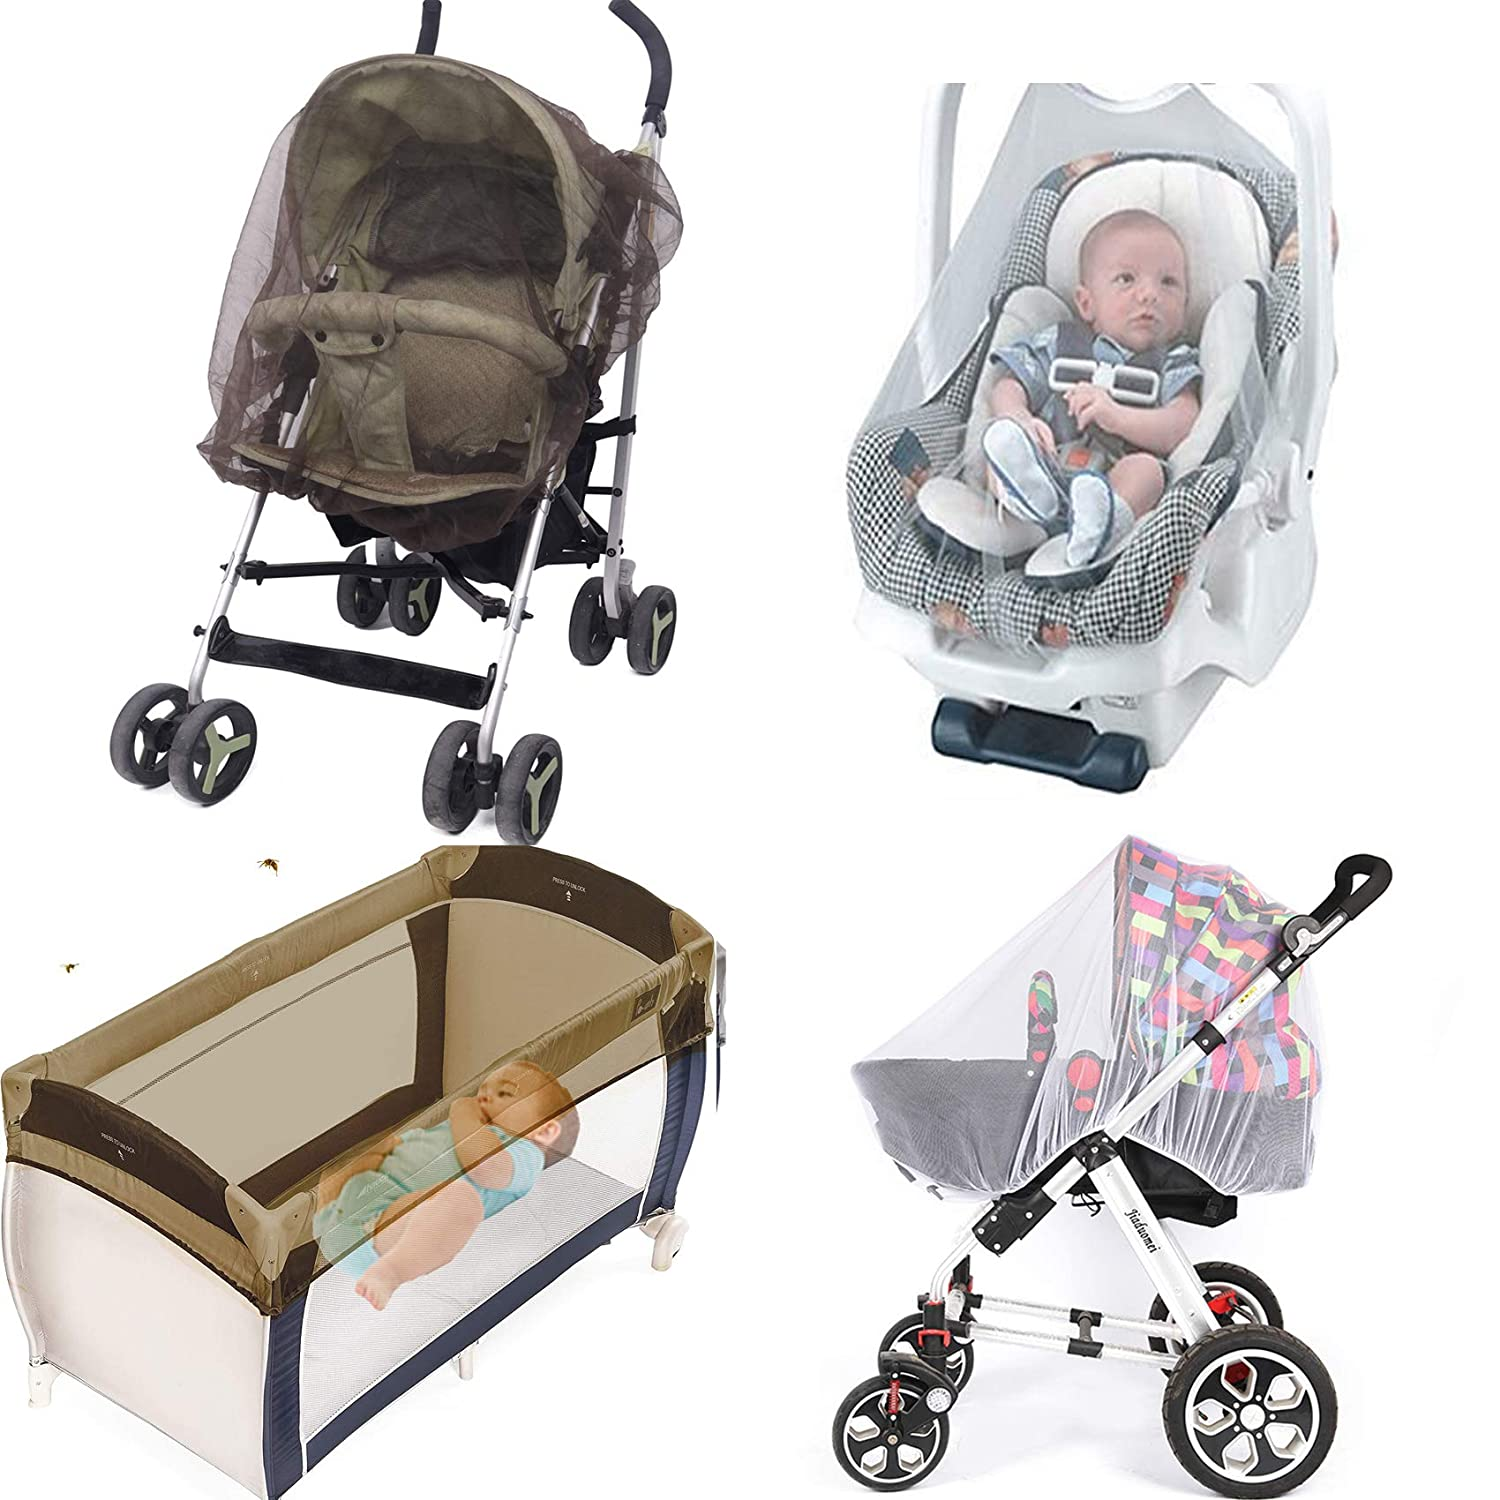 No-See-Um Mesh Mosquito Net for Baby Strollers, Car Seats, Bassinets, Cradles, Playards, Breathable no Harmful Chemicals Available in Grey or Coffee Color(Brown)